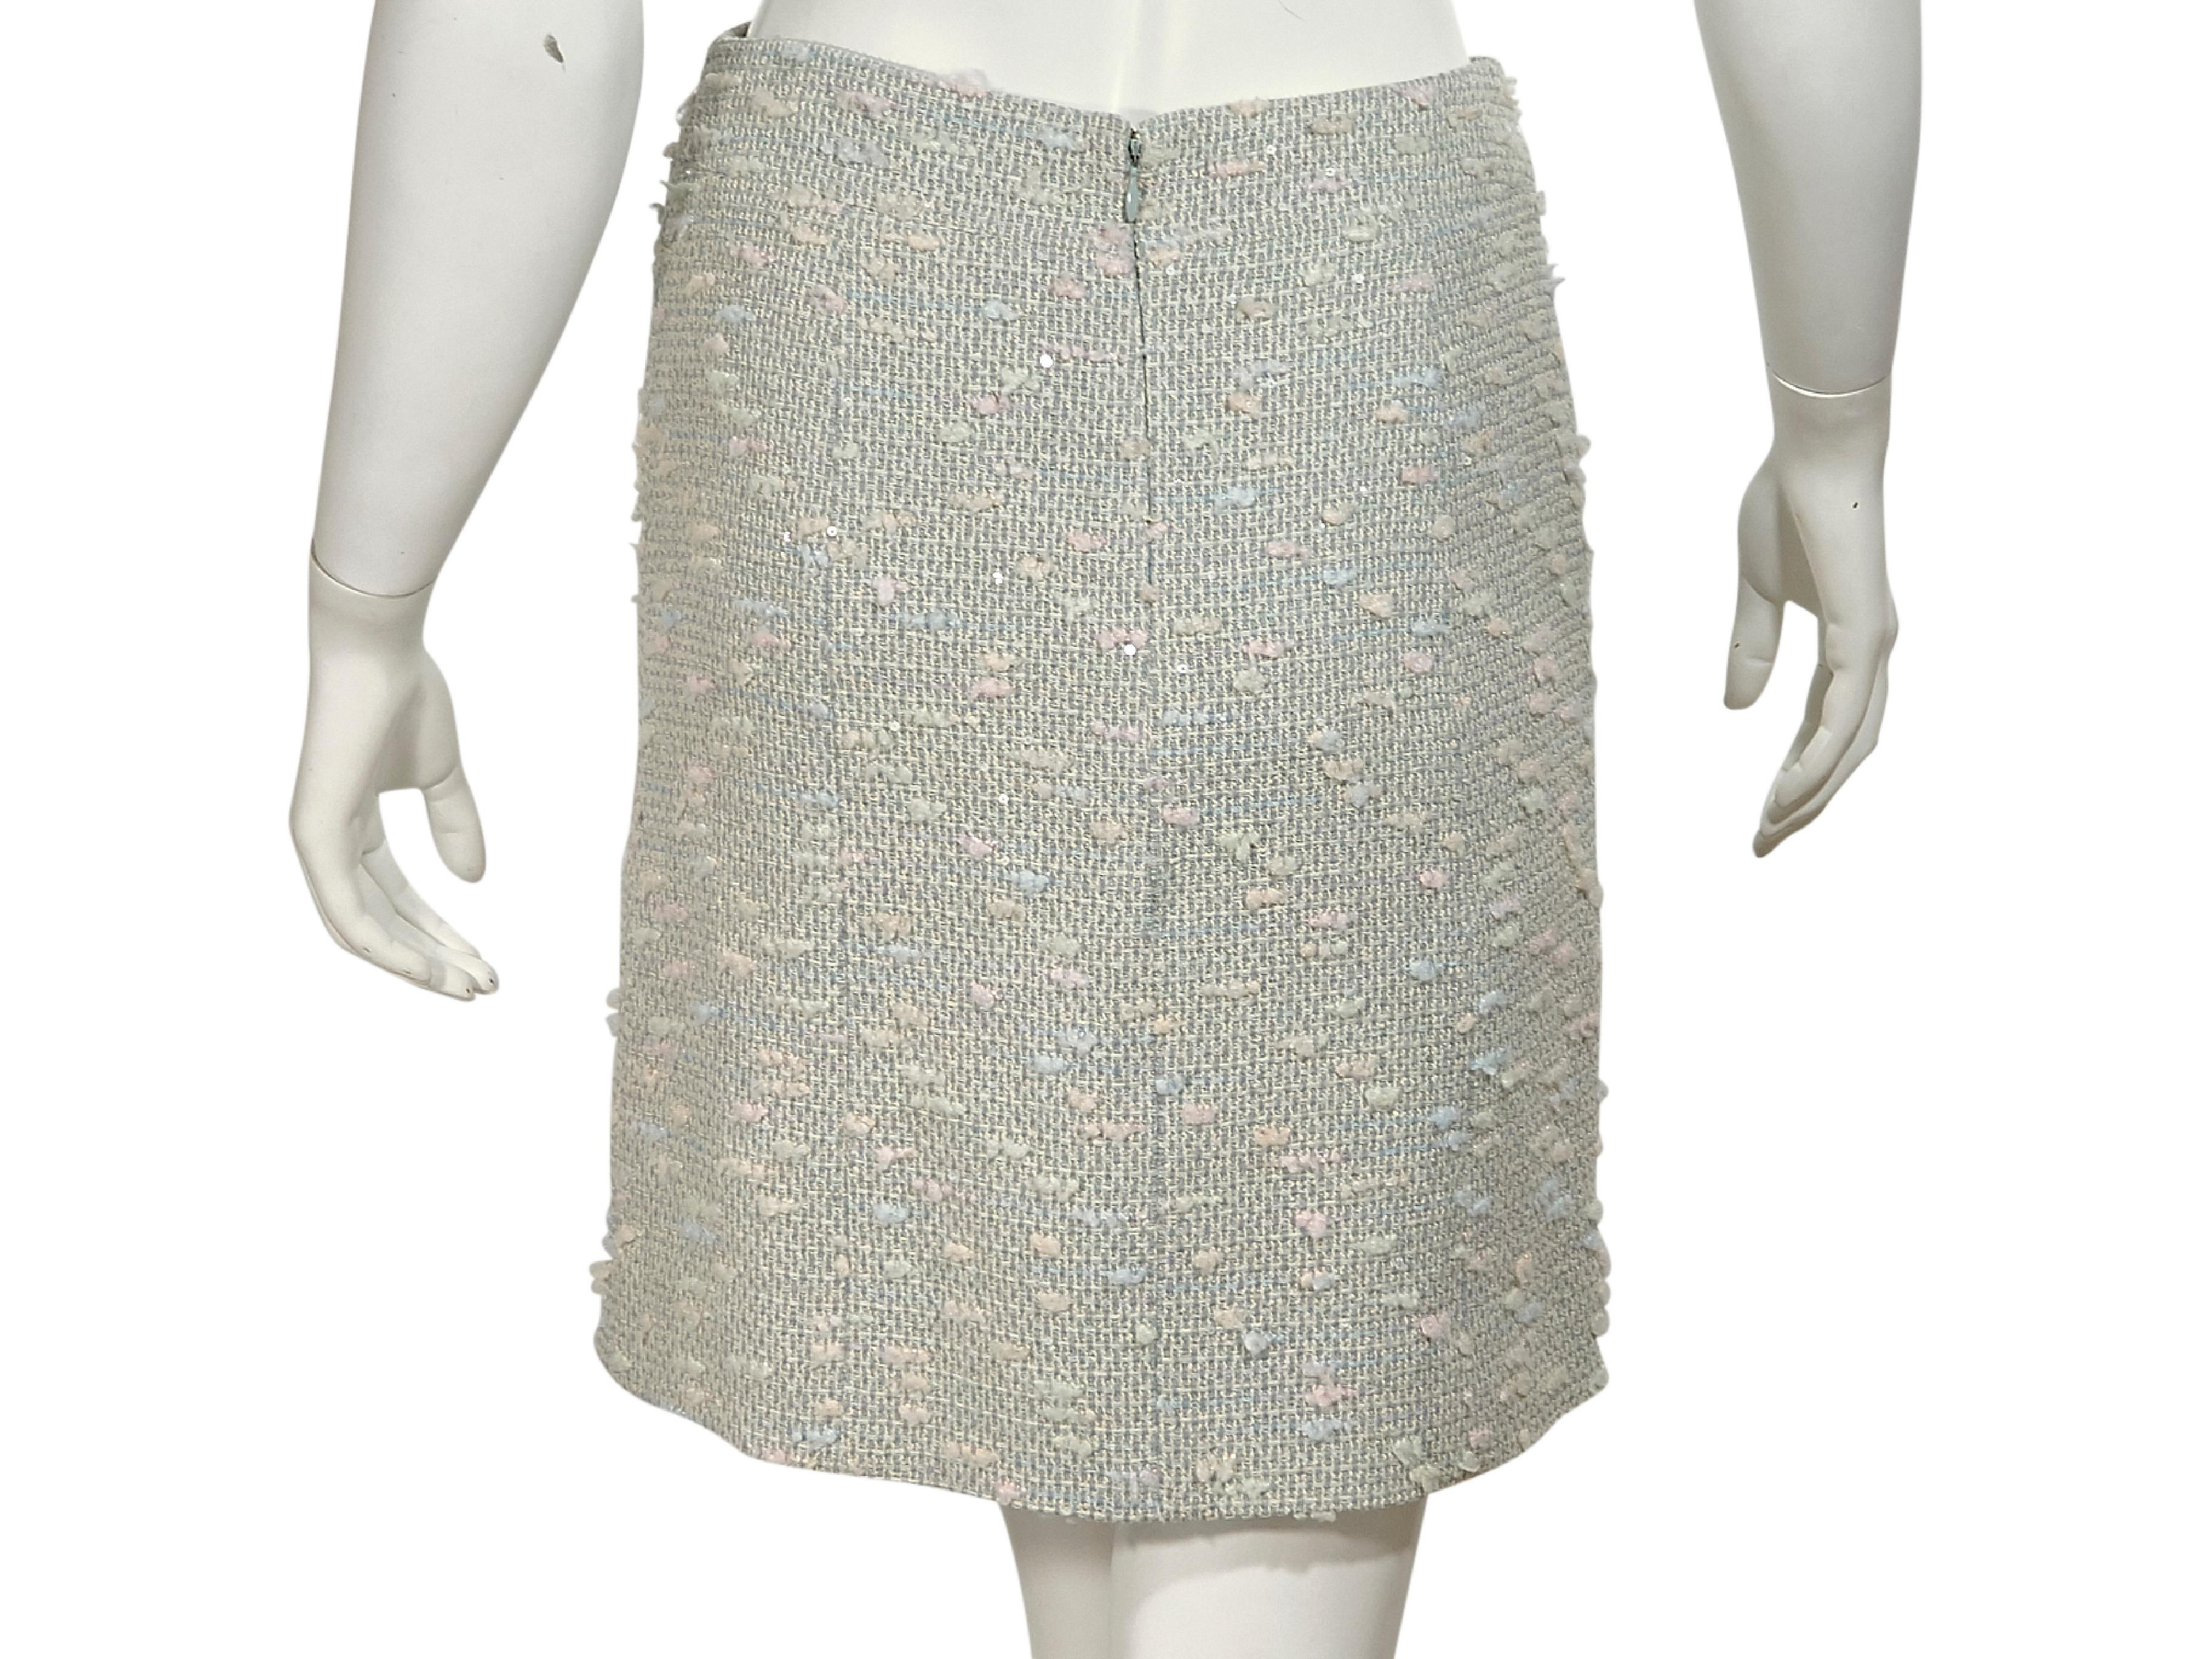 b42bbda0c1bf Multicolor Pastel Chanel Tweed Pencil Skirt For Sale at 1stdibs